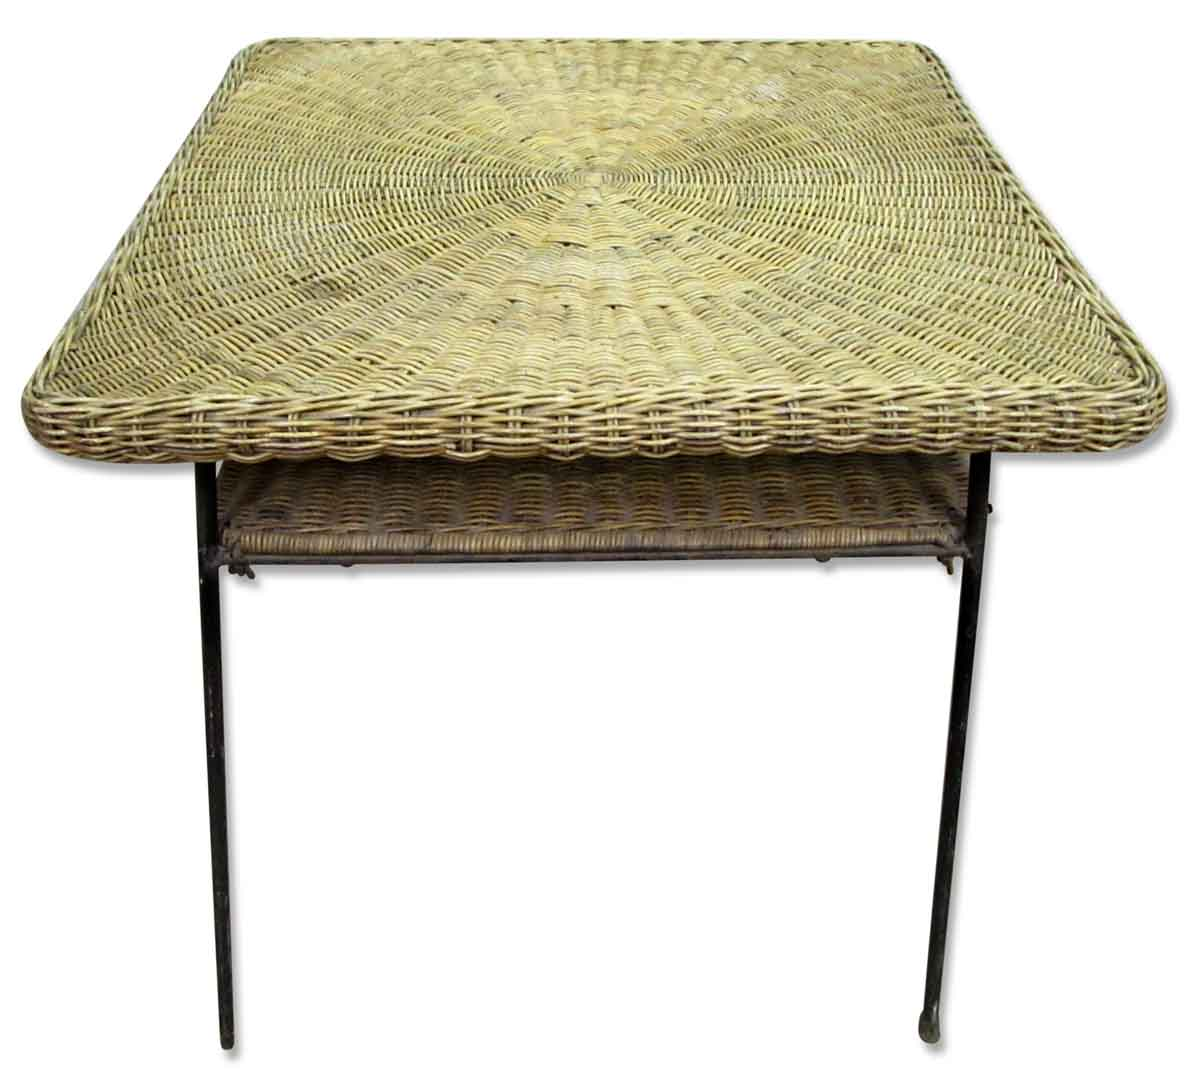 Antique Wicker Desk - Antique Wicker Desk Olde Good Things